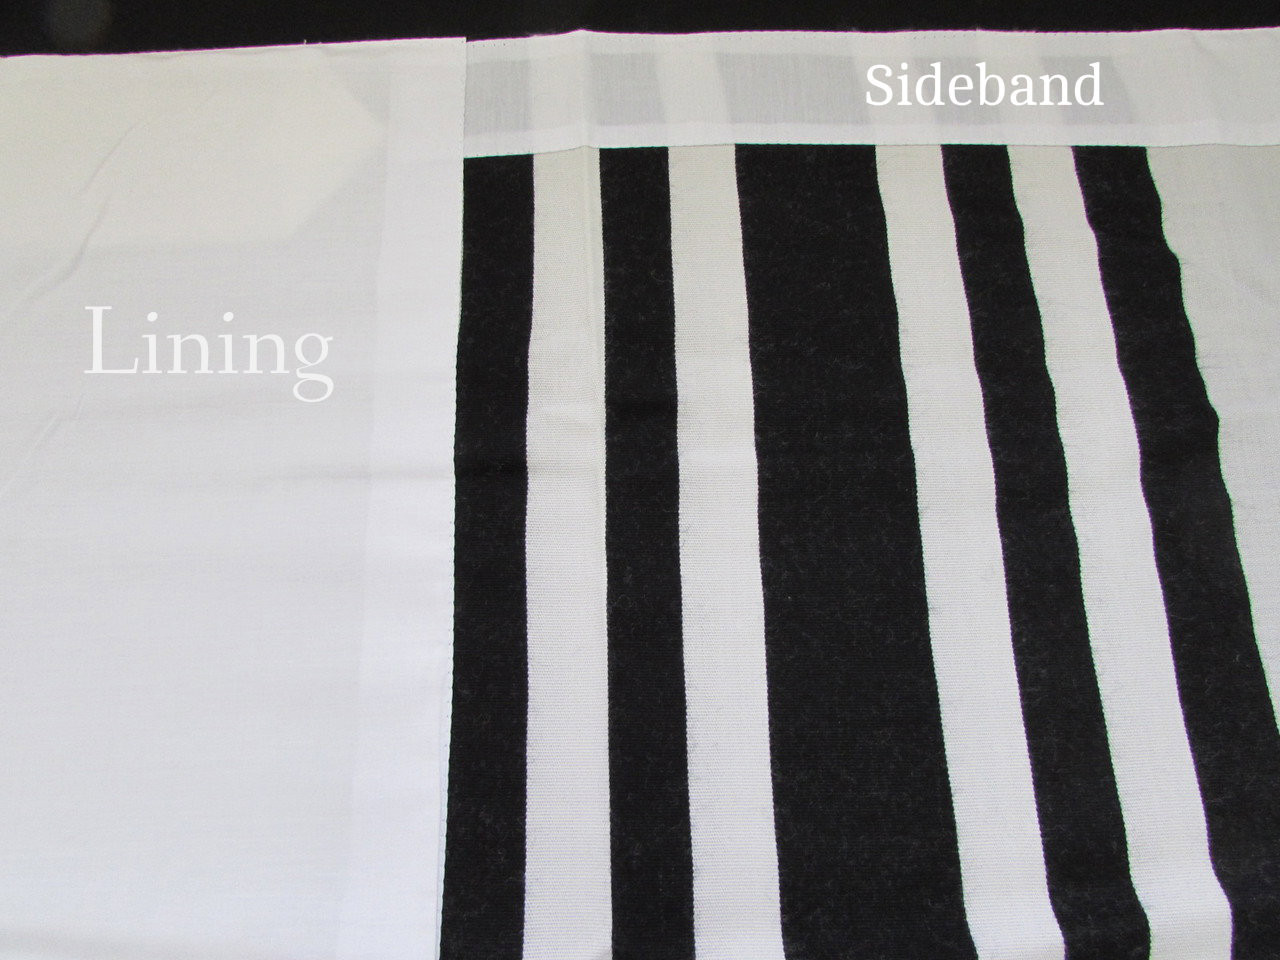 Sidebands made of matching fabric (not standard satin)